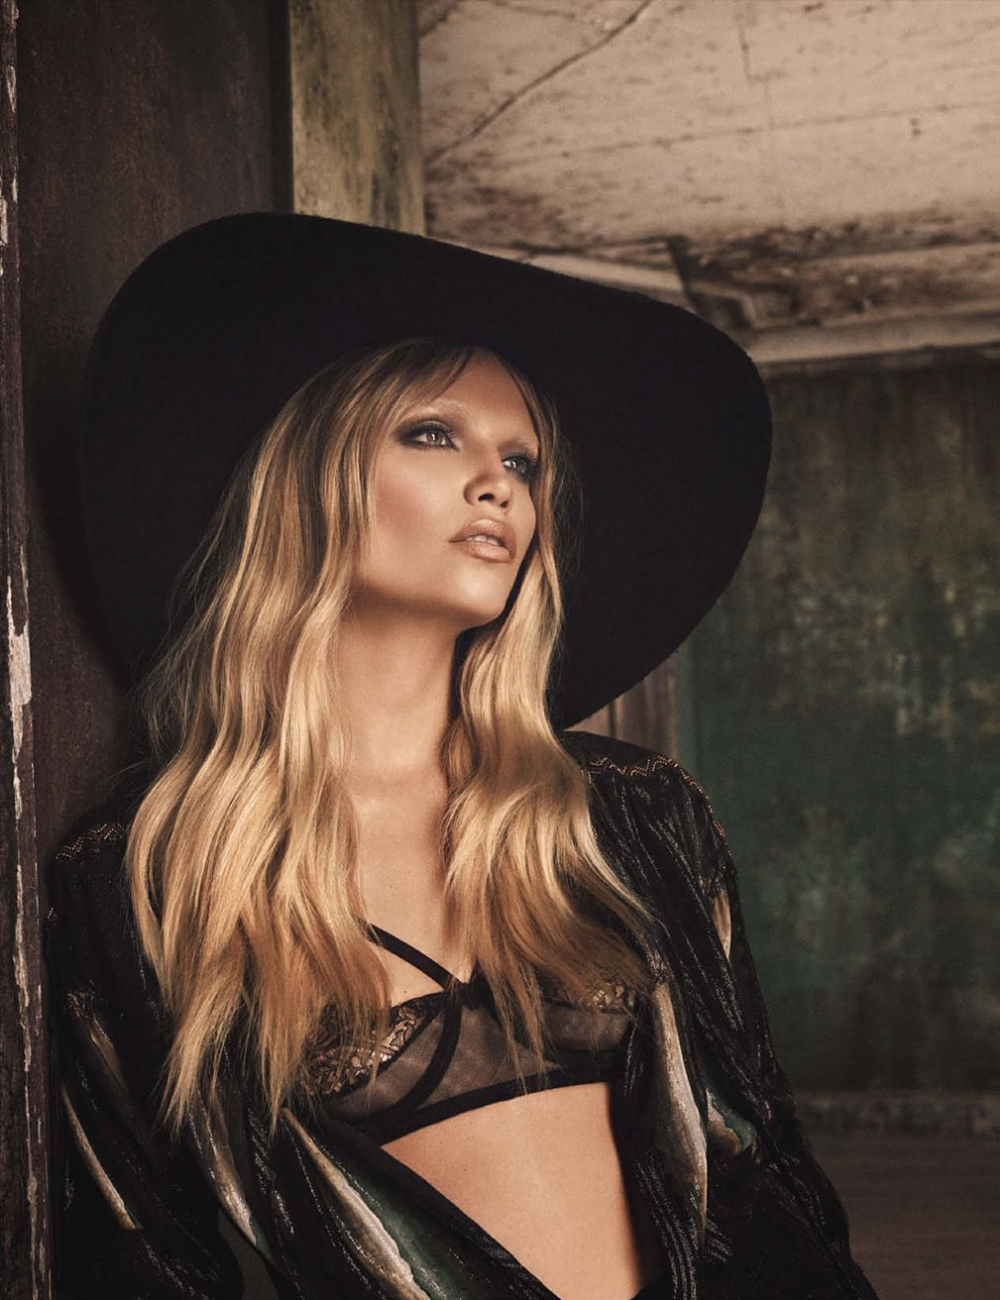 Natasha-Poly-by-Luici-and-Iango-for-Vogue-Germany-October-2014-3.jpg